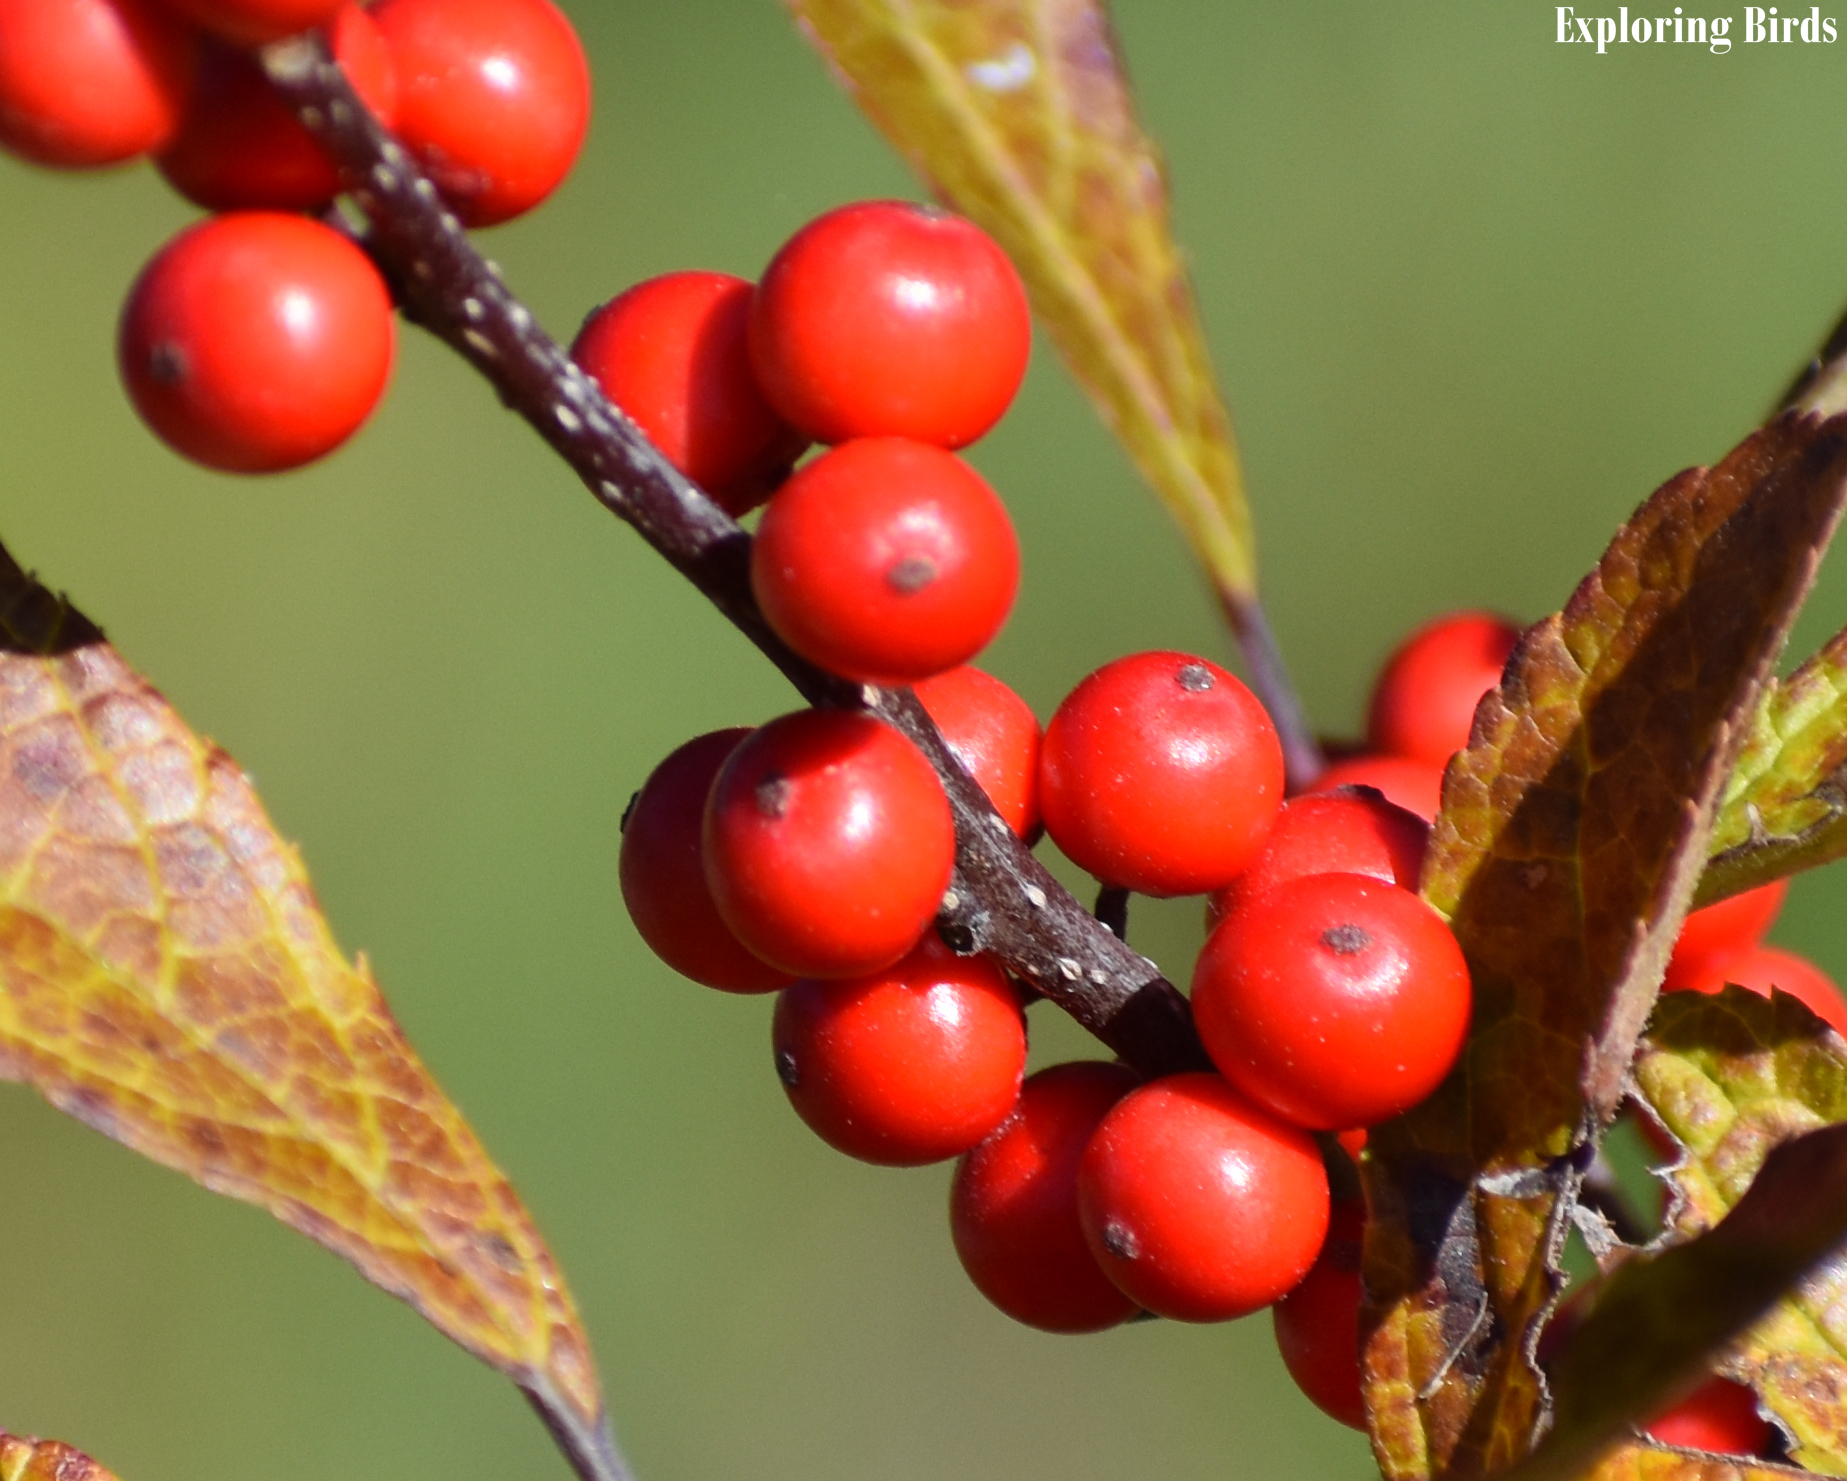 Winterberry is a plant that attracts birds